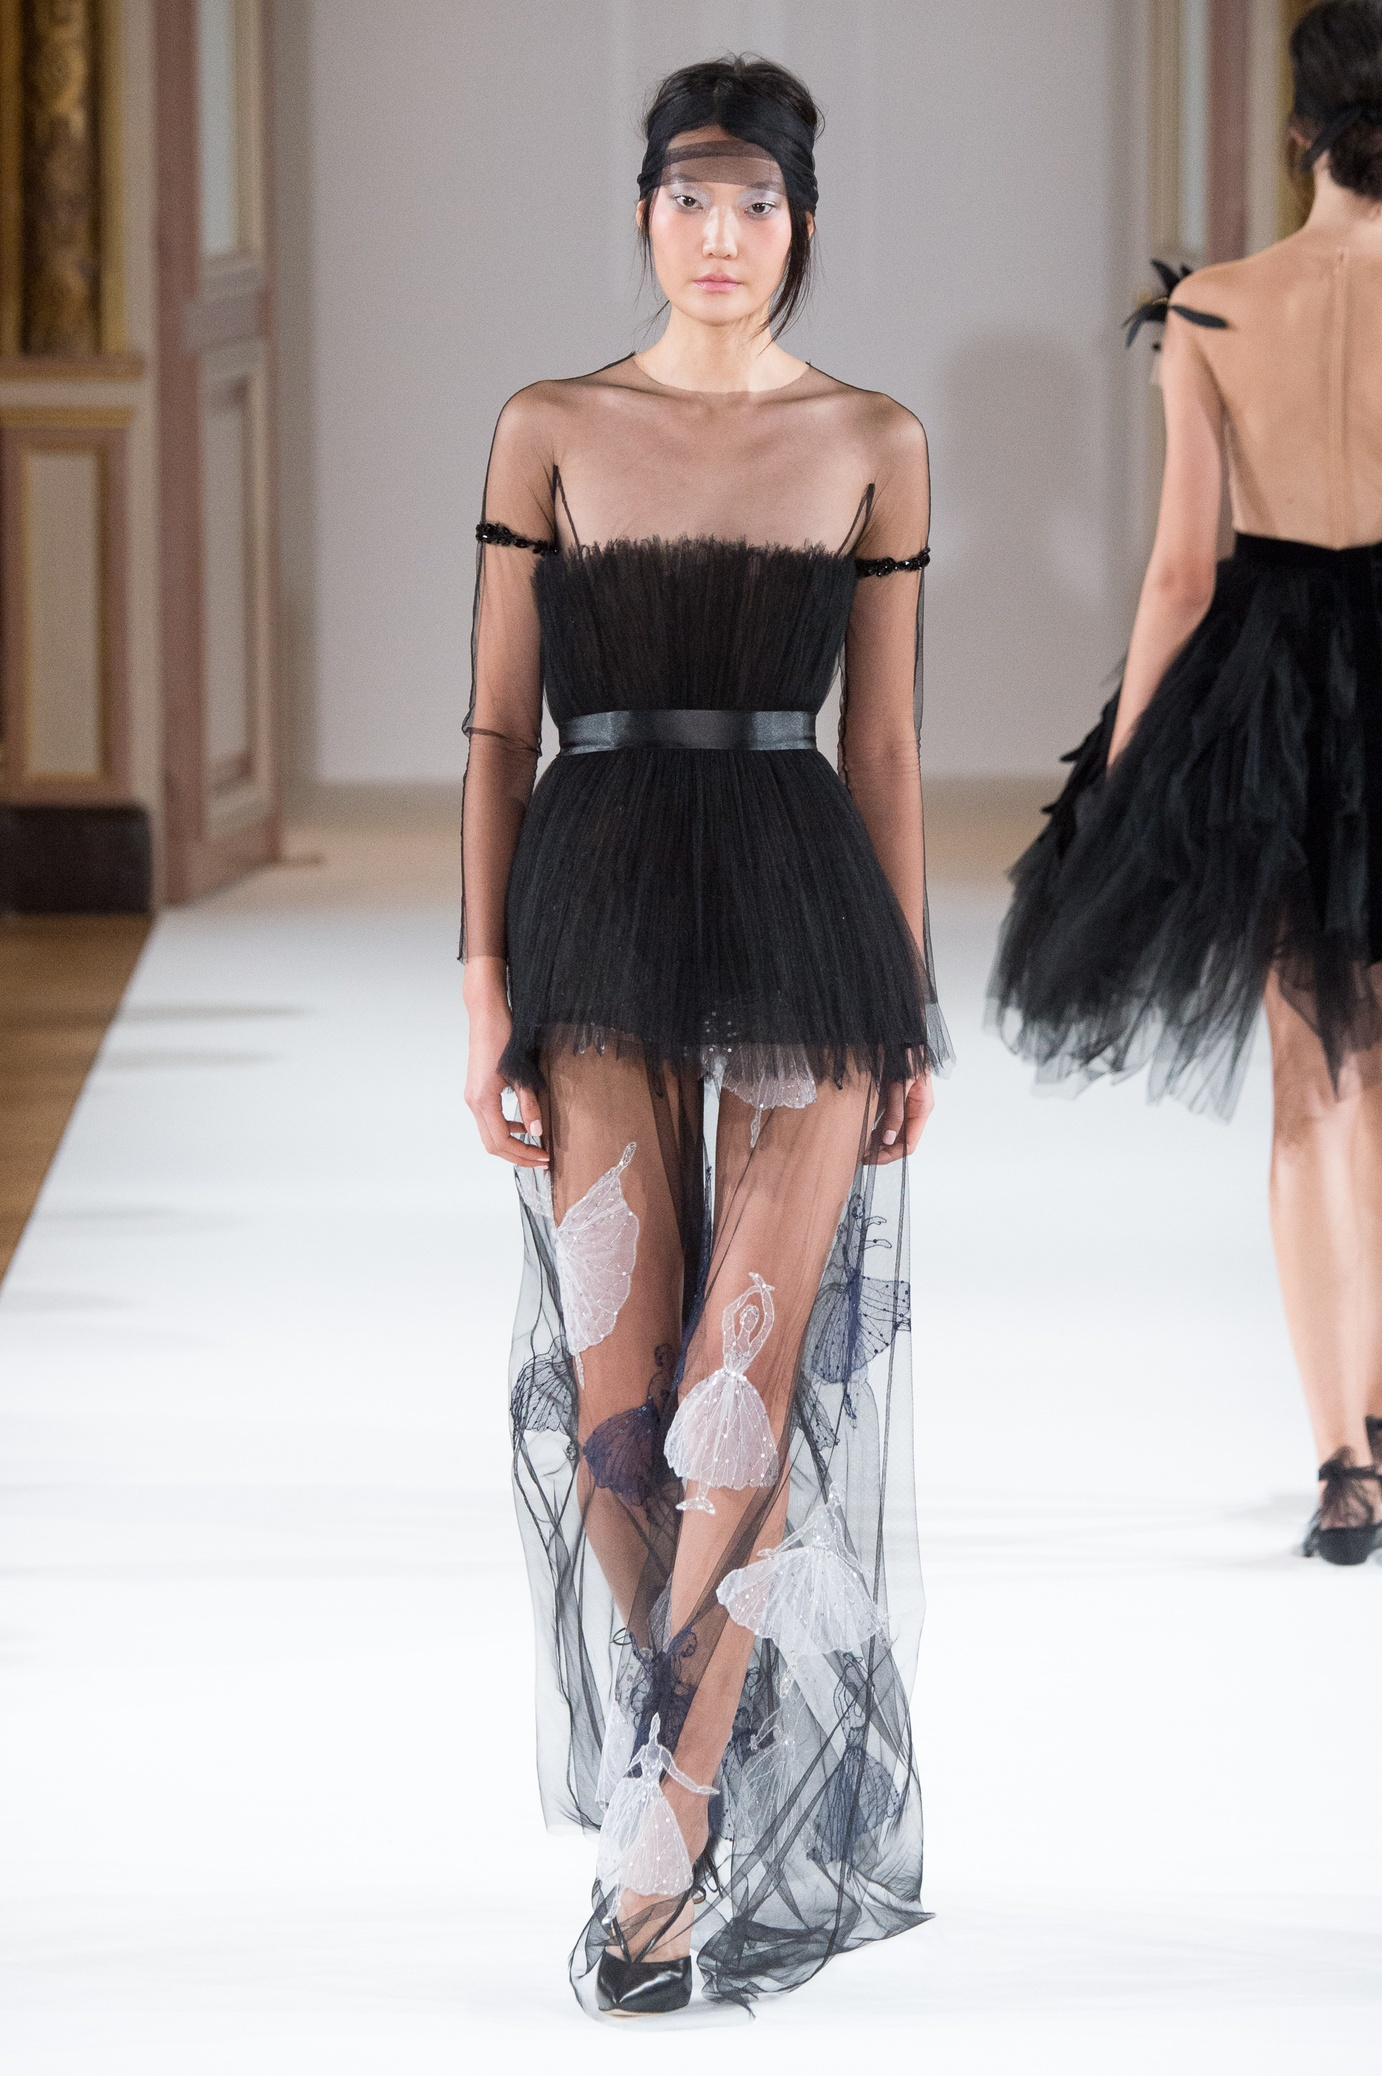 yanina_couture_ss16___look_3_jpg_4821_north_1382x_black